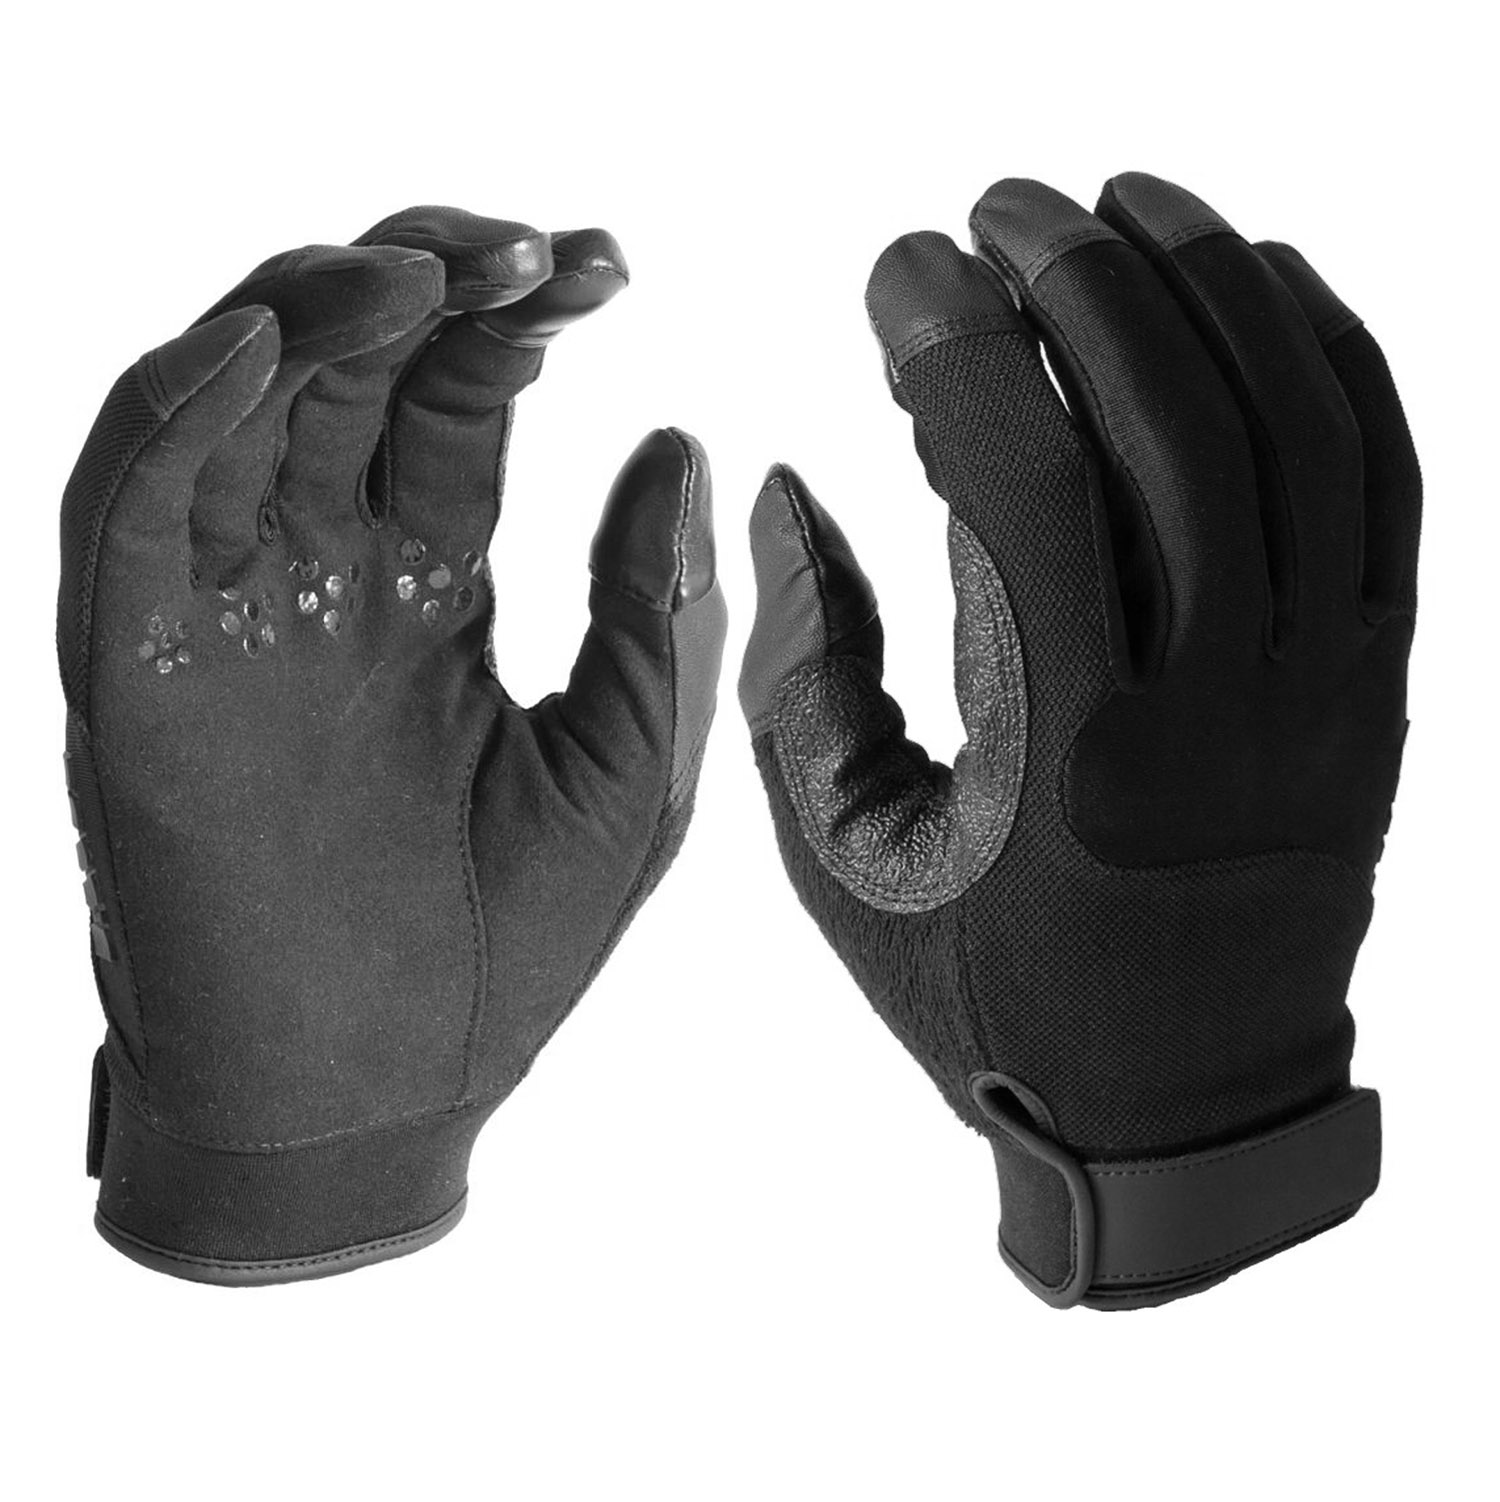 Nike Gloves Touch Screen: HWI Gear Cut Resistant Touchscreen Gloves